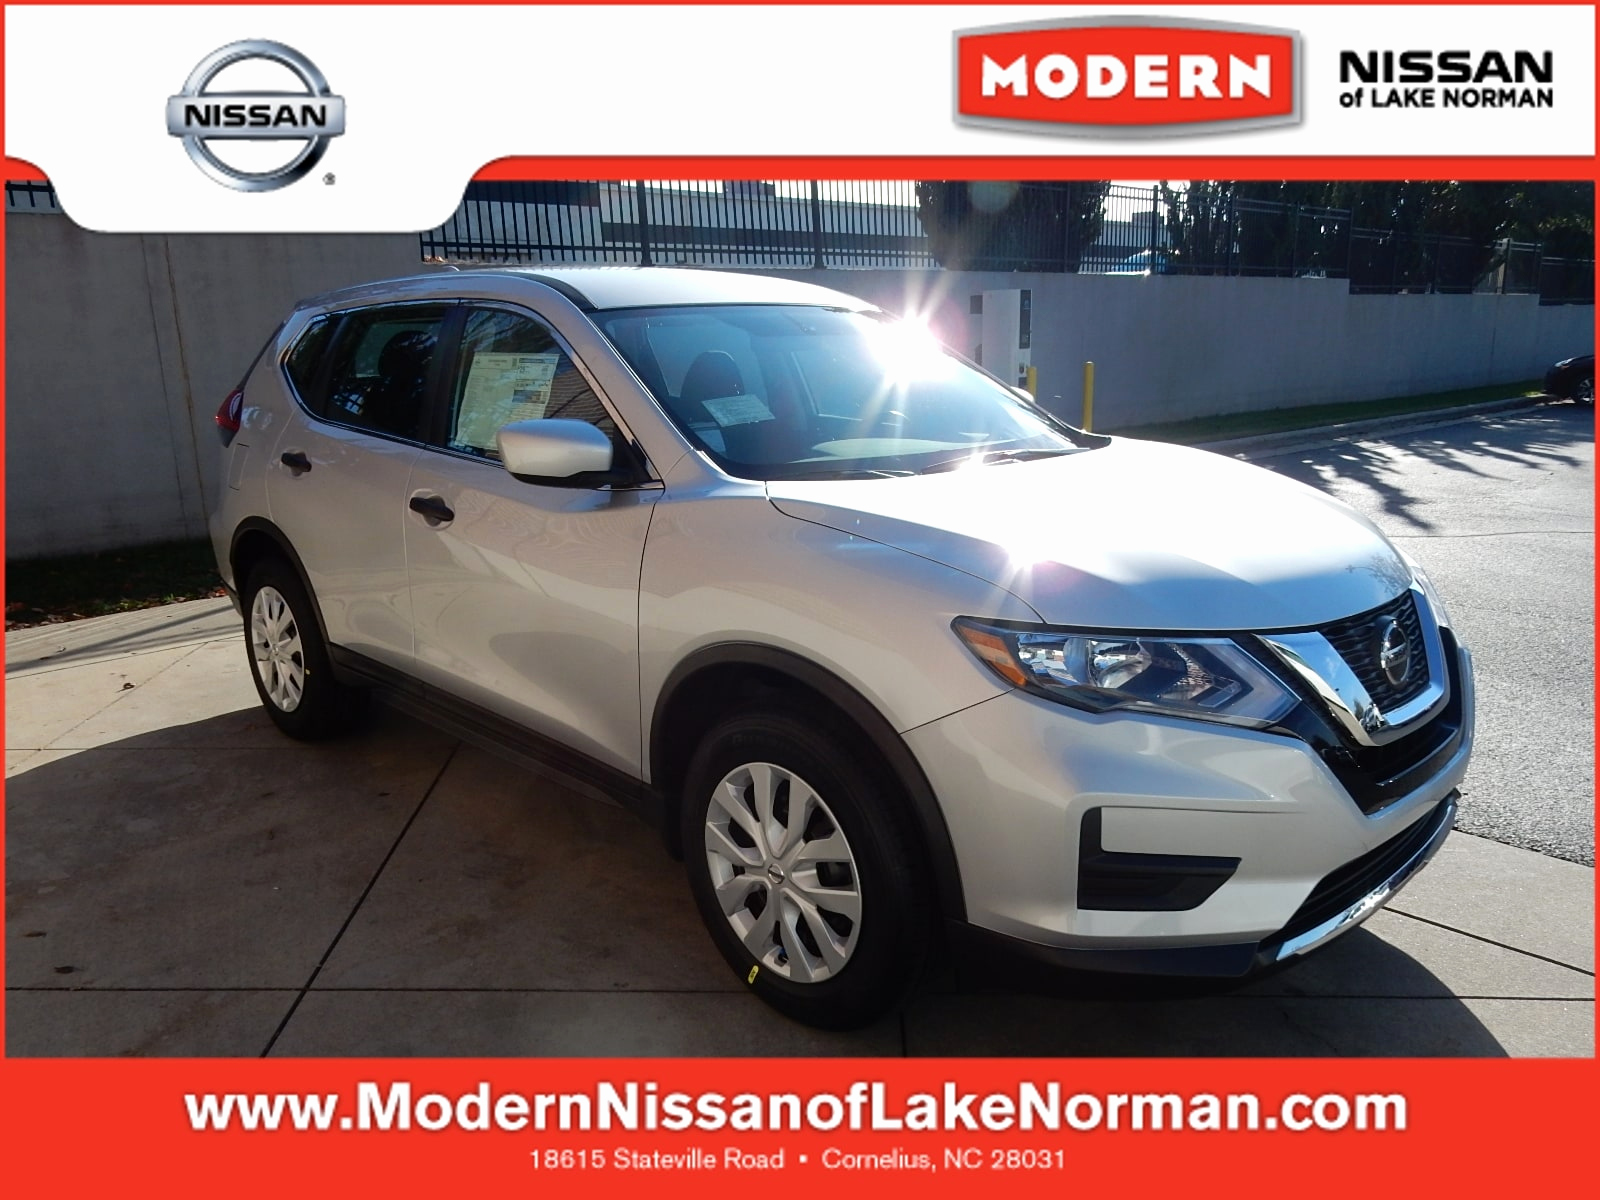 2017 Nissan Rogue Dealer Invoice Stylish Decoration Nissan Rogue